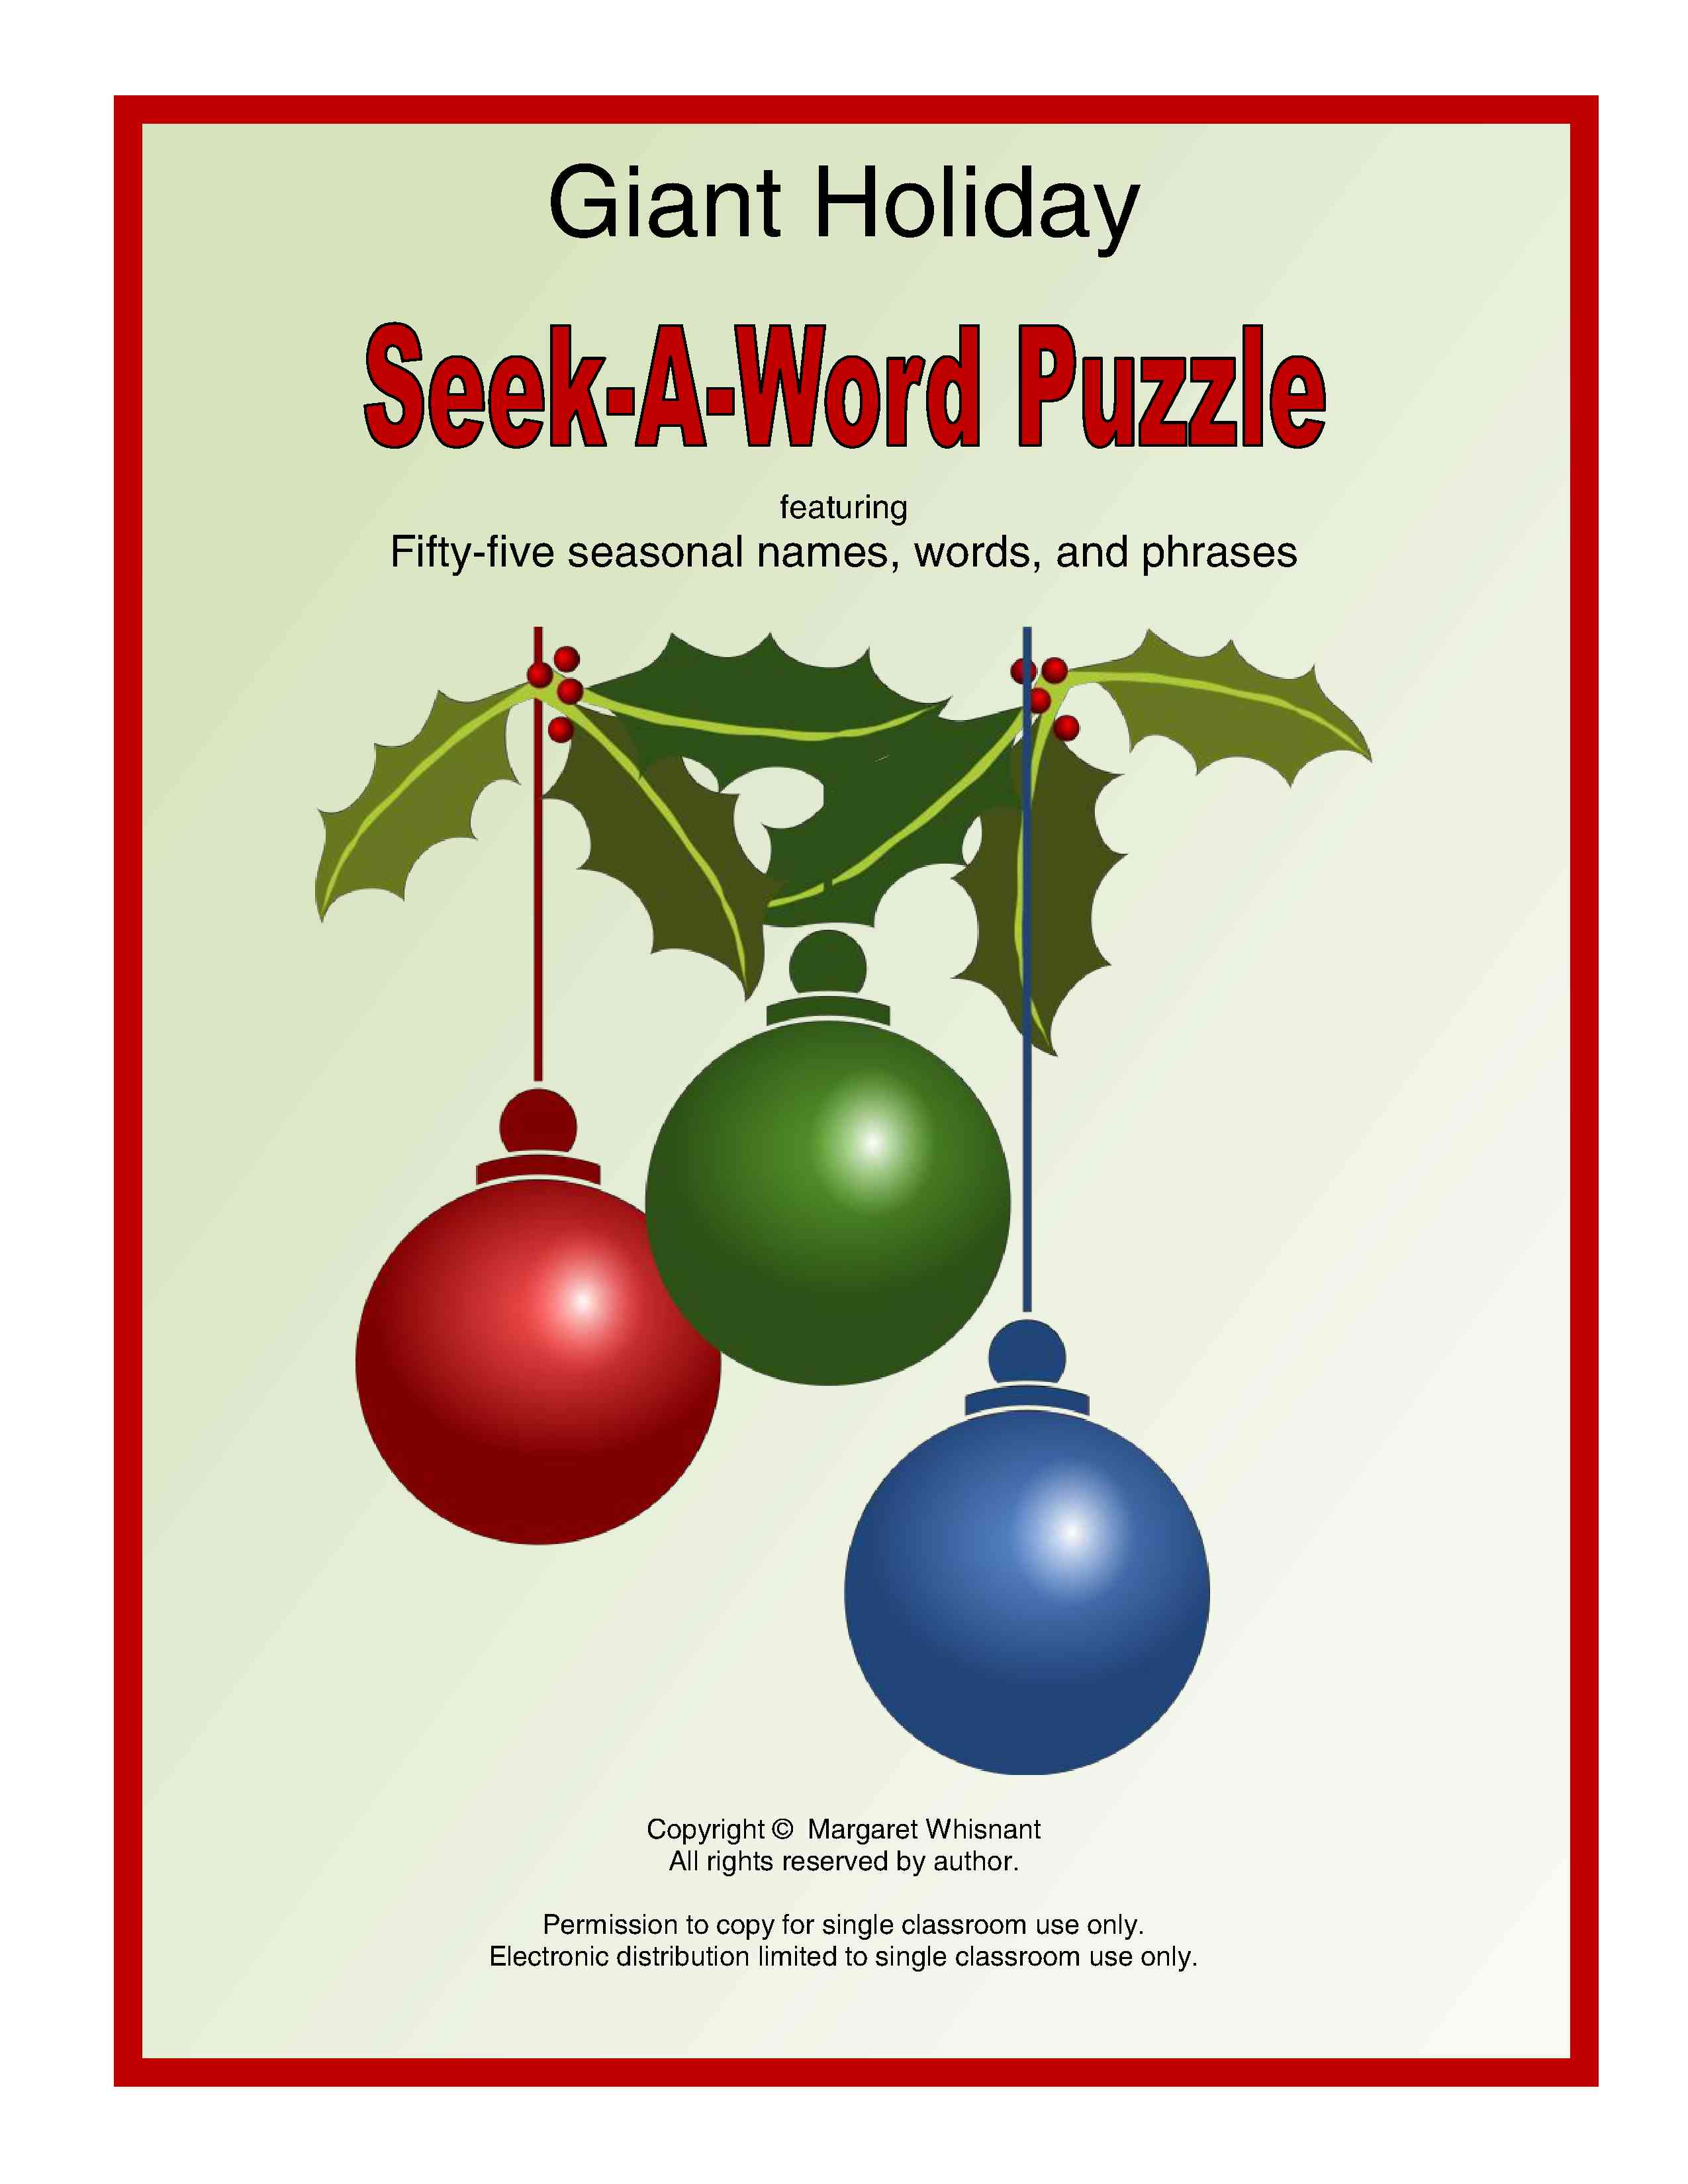 Go On A Search For 55 Different Holiday Related Names Words And Phrases All Hidden In One Puzzle